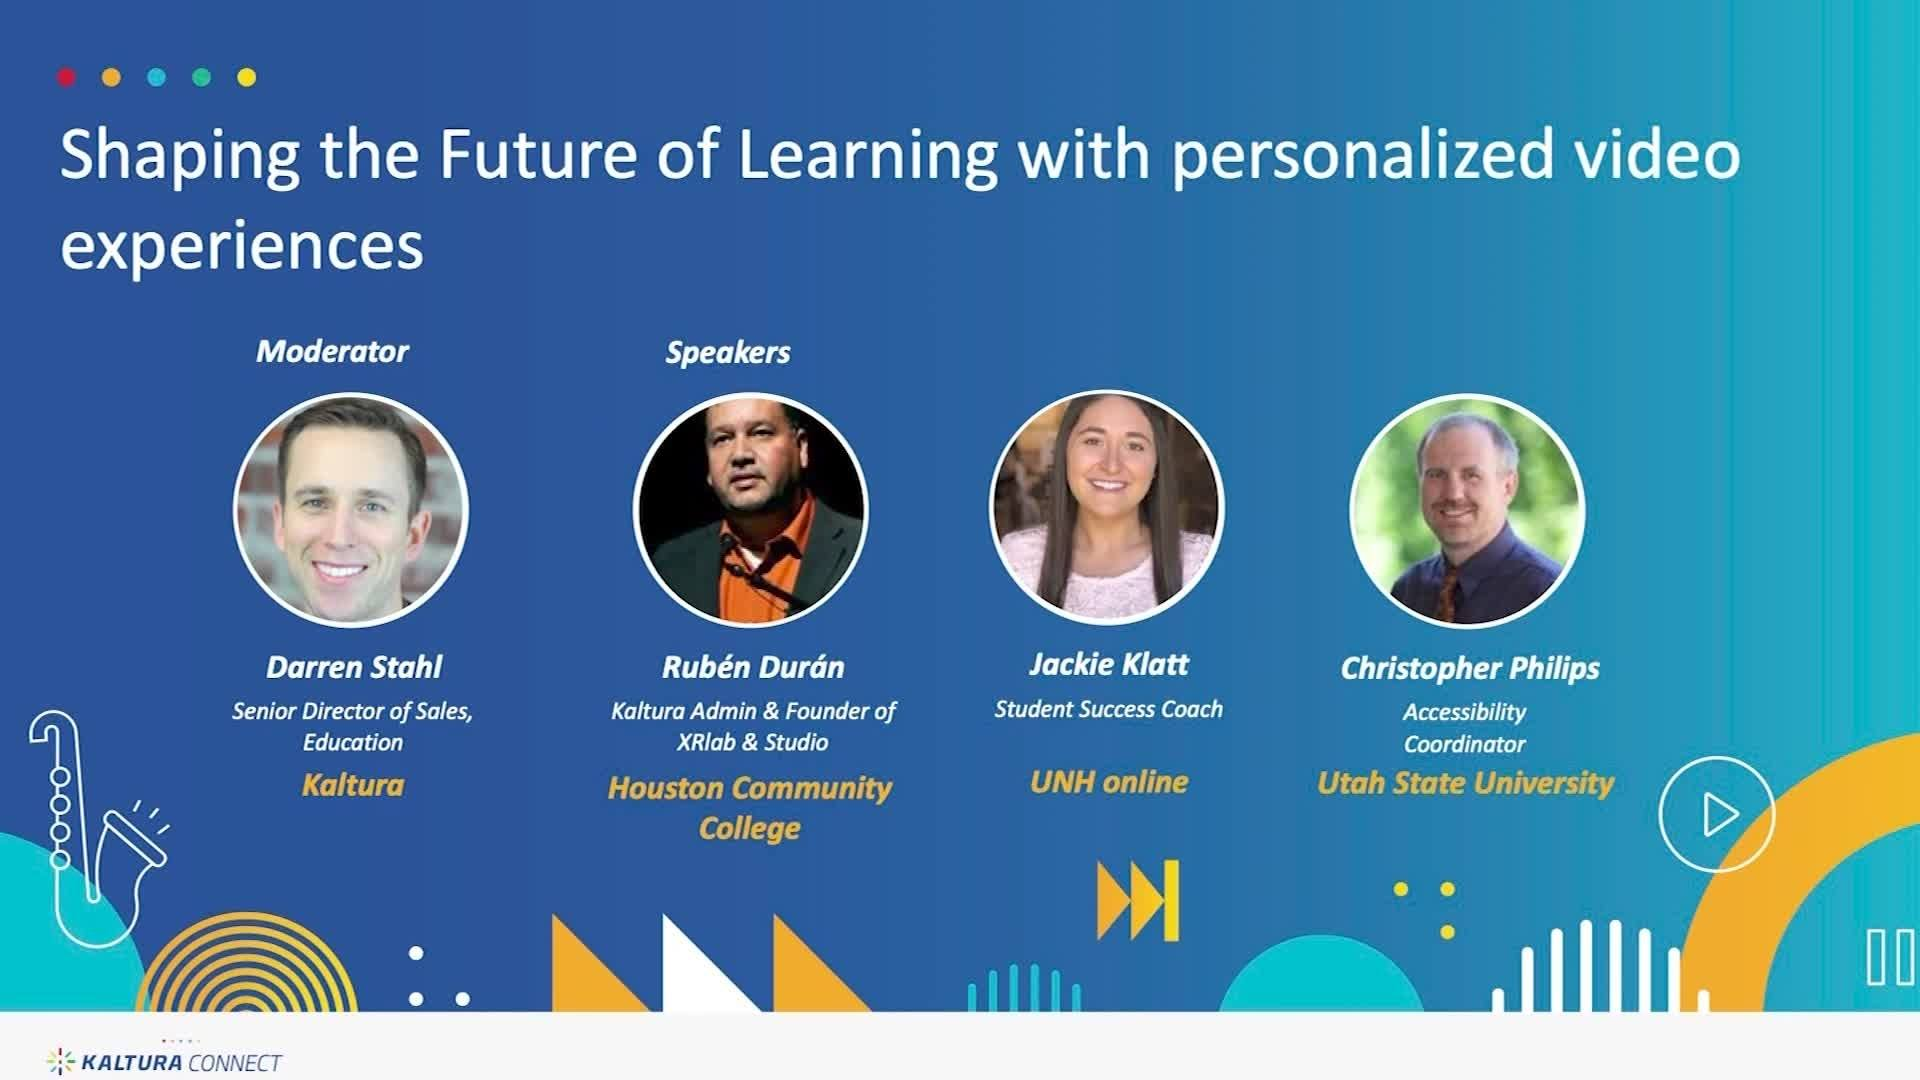 Shaping the Future of Learning with Personalized Video Experiences